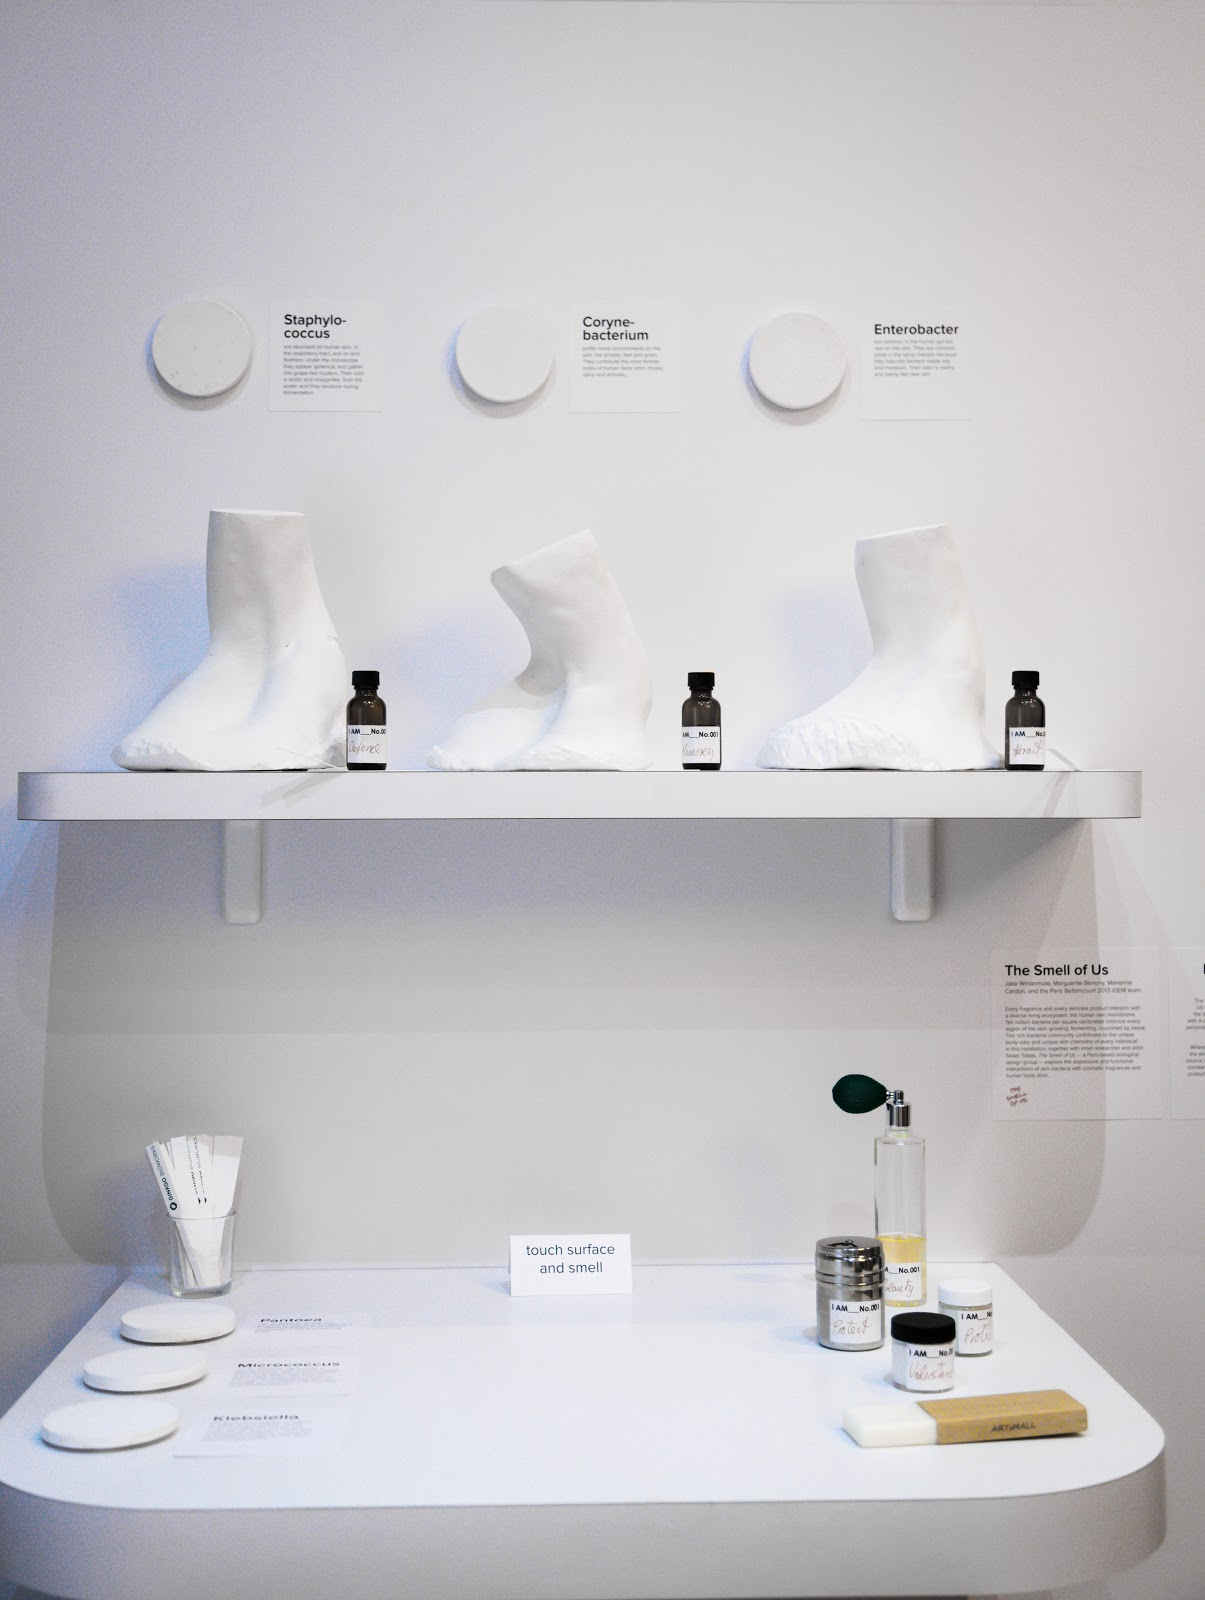 The Smell of Us by Paris Bettencourt iGEM 2014 team and I AM_____NO.001 by Sissel Tolaas at the World Perfumery Congress, 2016. Credit: Christina Agapakis.